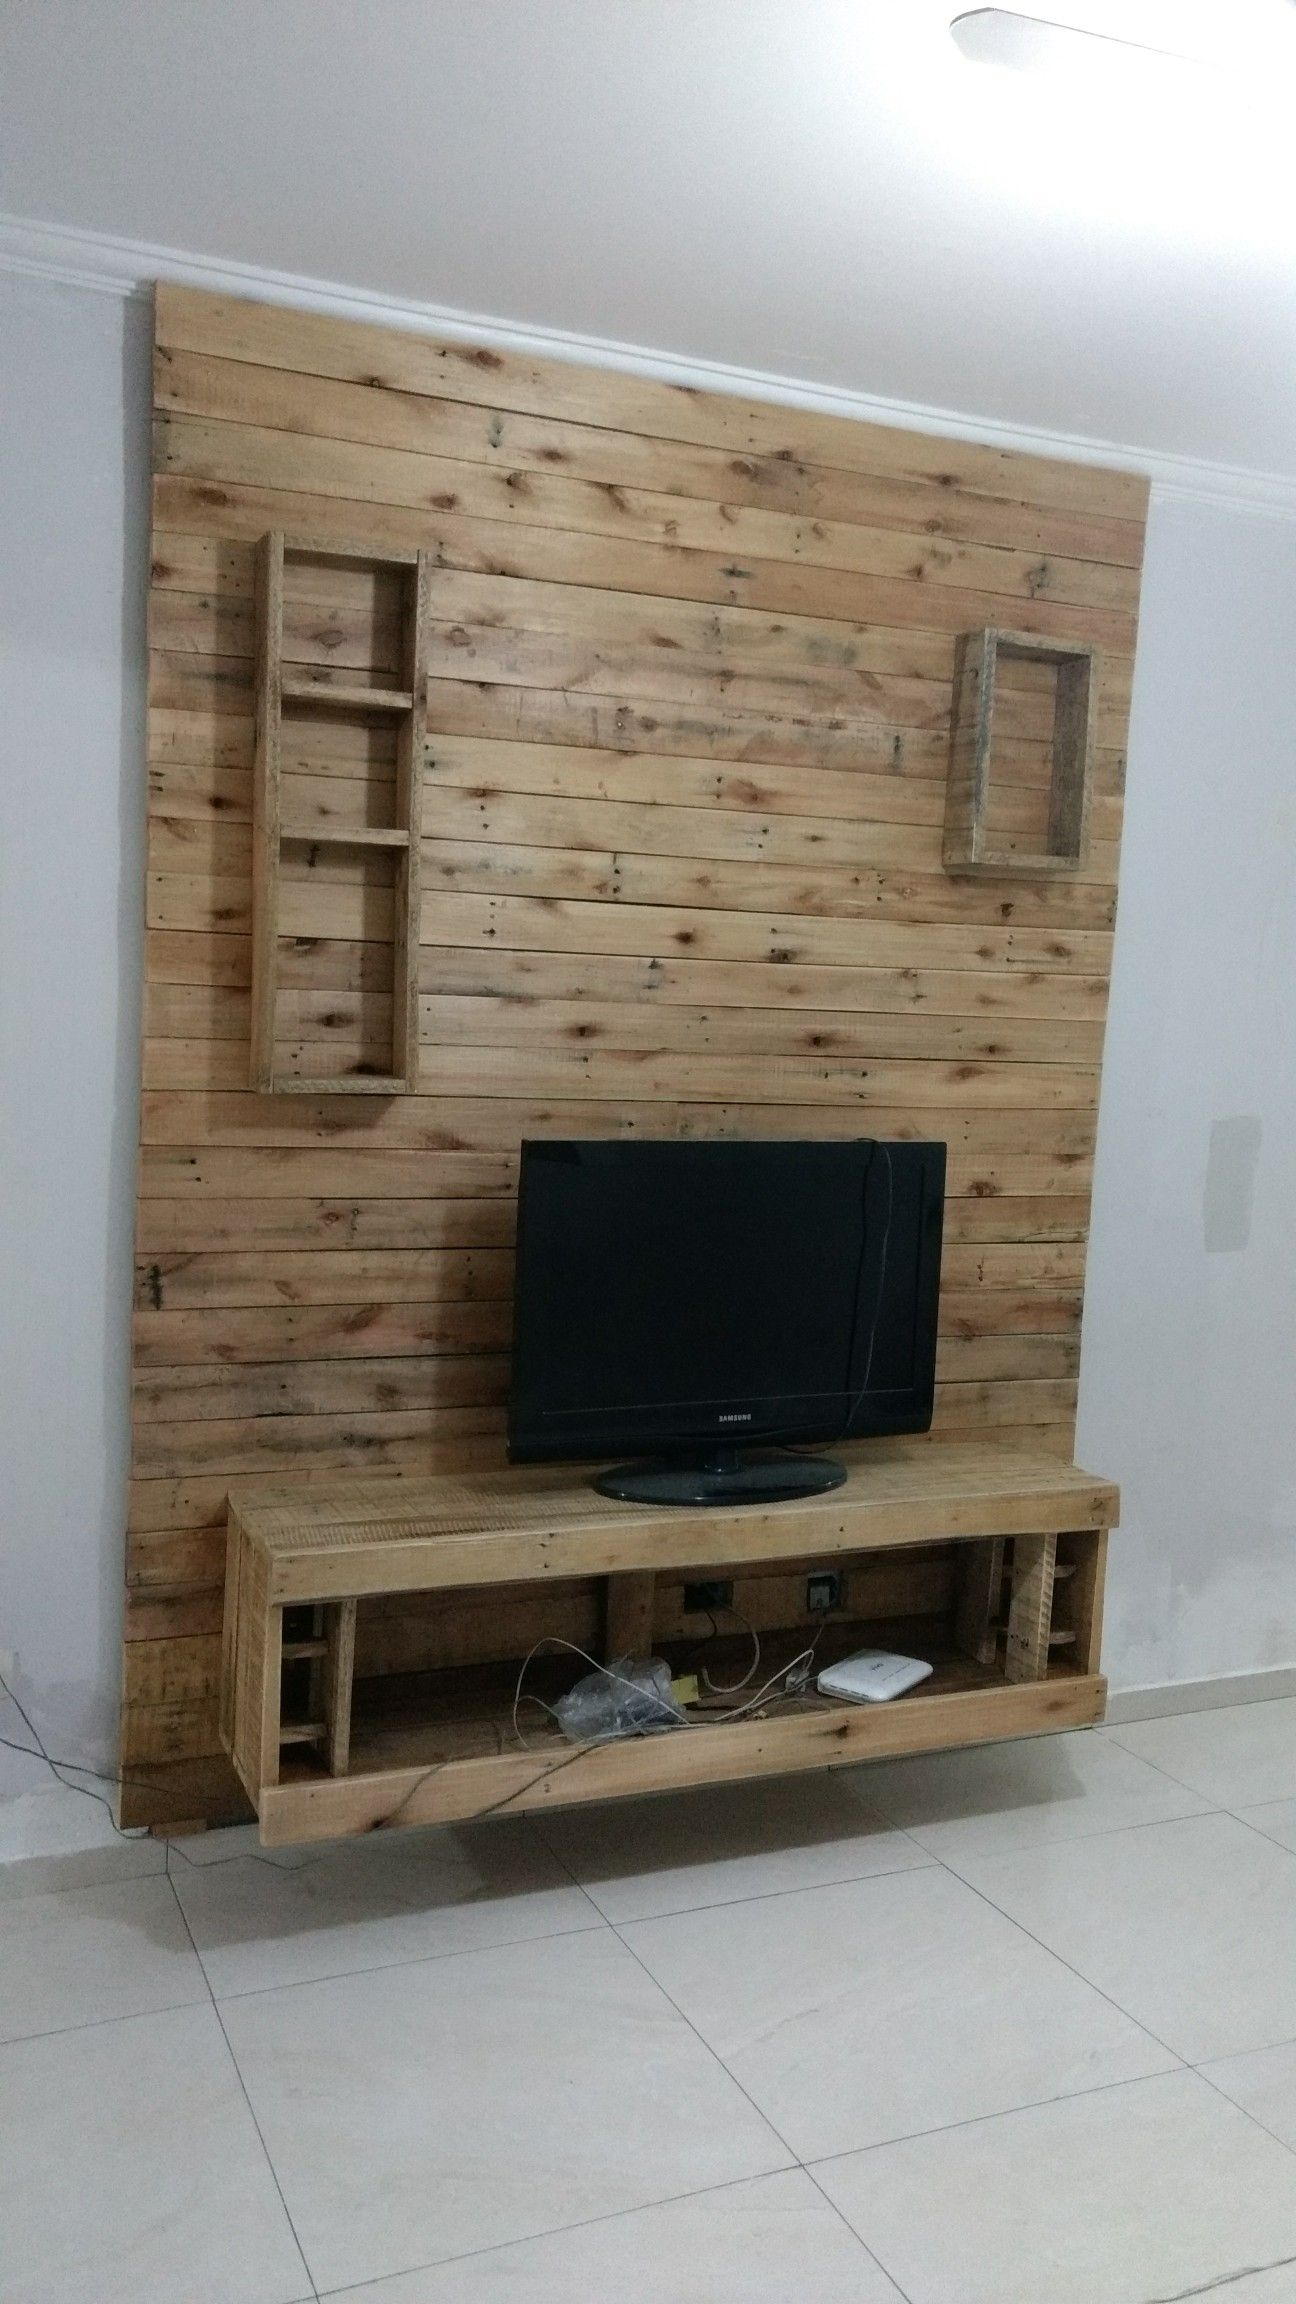 Tv Wand Pinterest Painel De Tv Feito Com Pallets Prod In 2019 Pallet Furniture